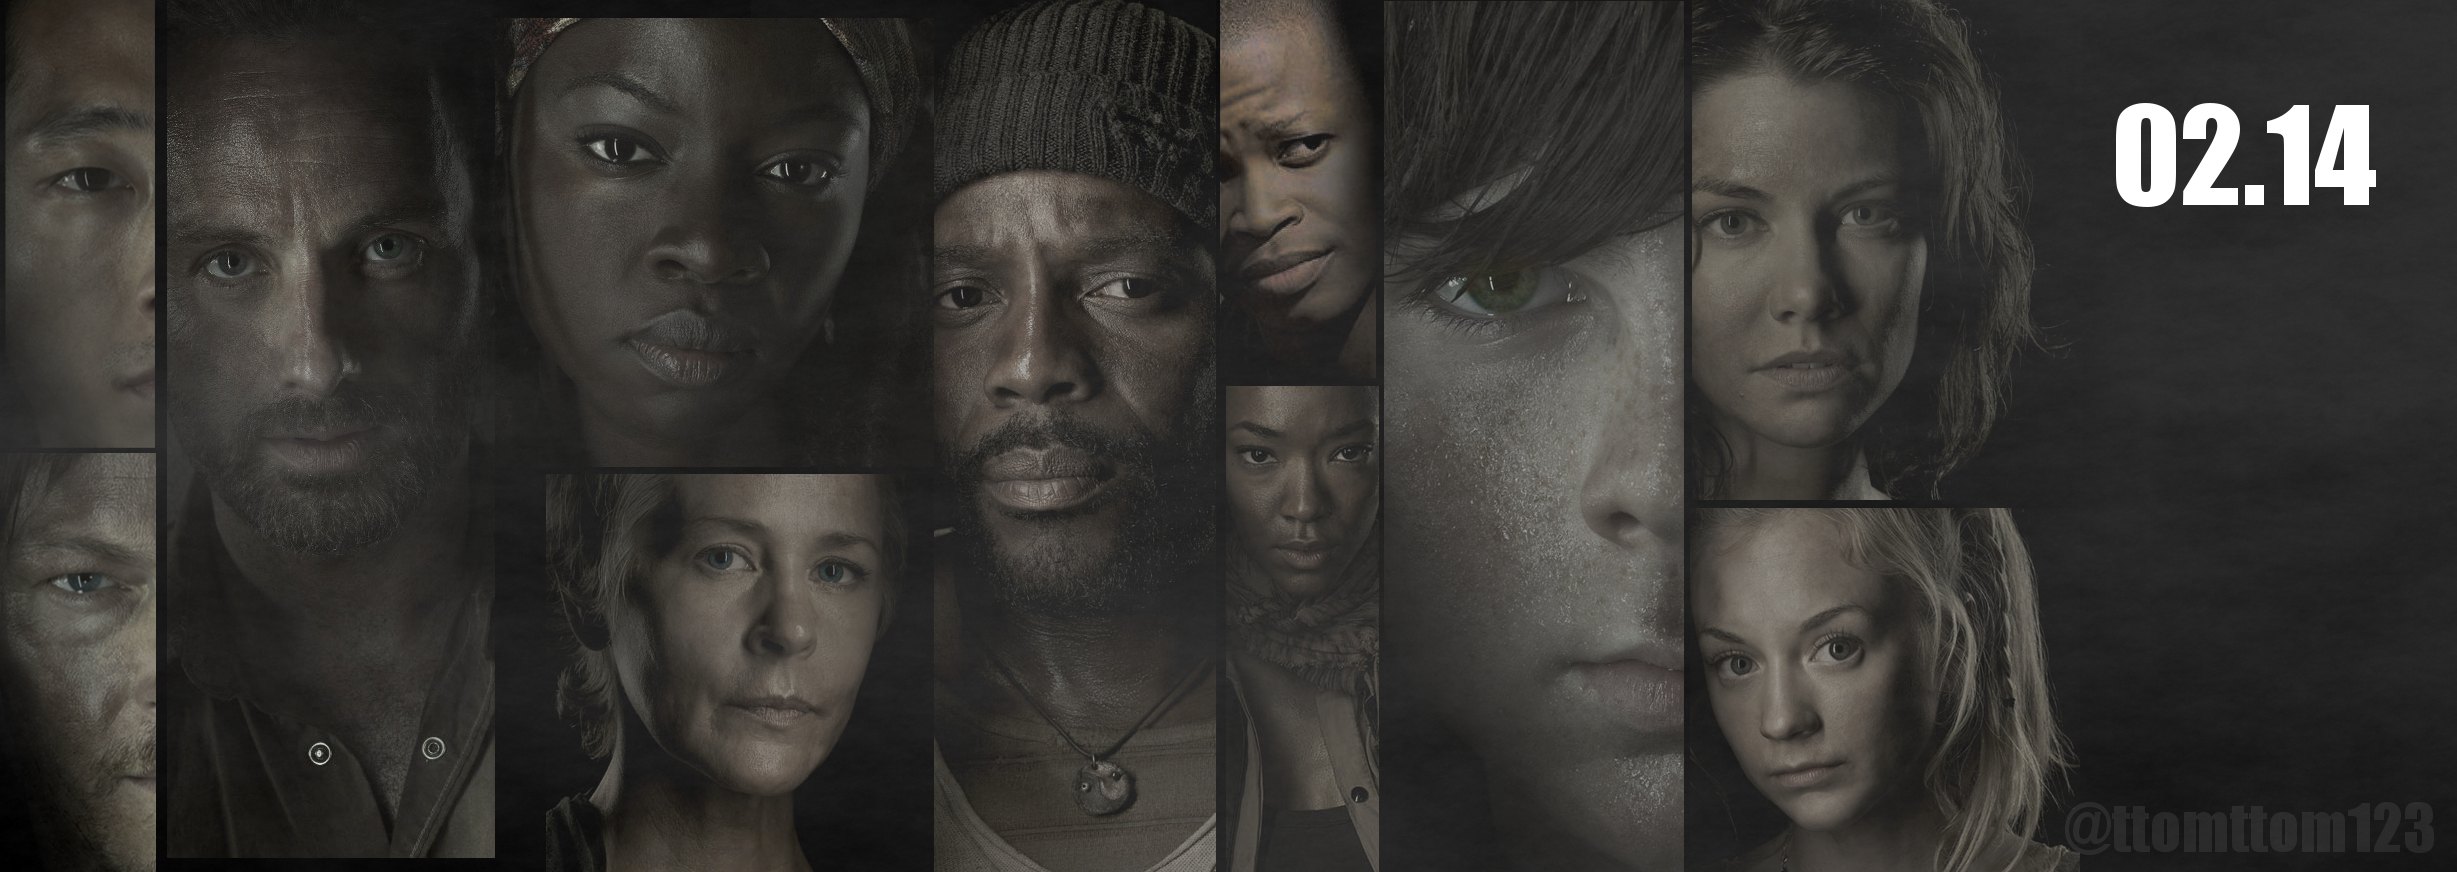 THE WALKING DEAD - FEB 2014 - PROMO POSTER